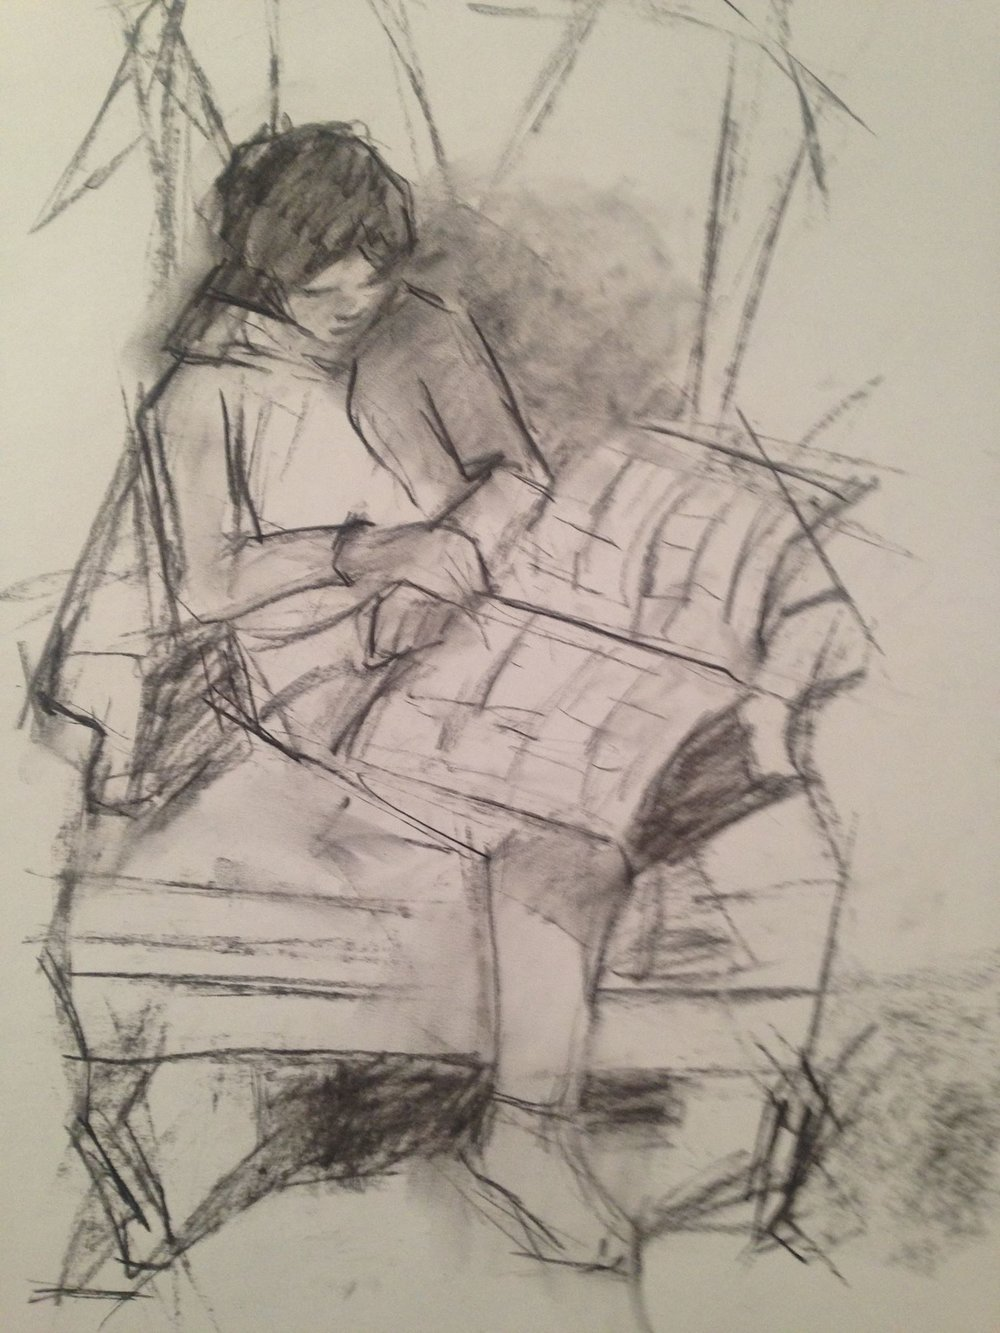 Morgan reading comic books.  charcoal, 18x24 inches